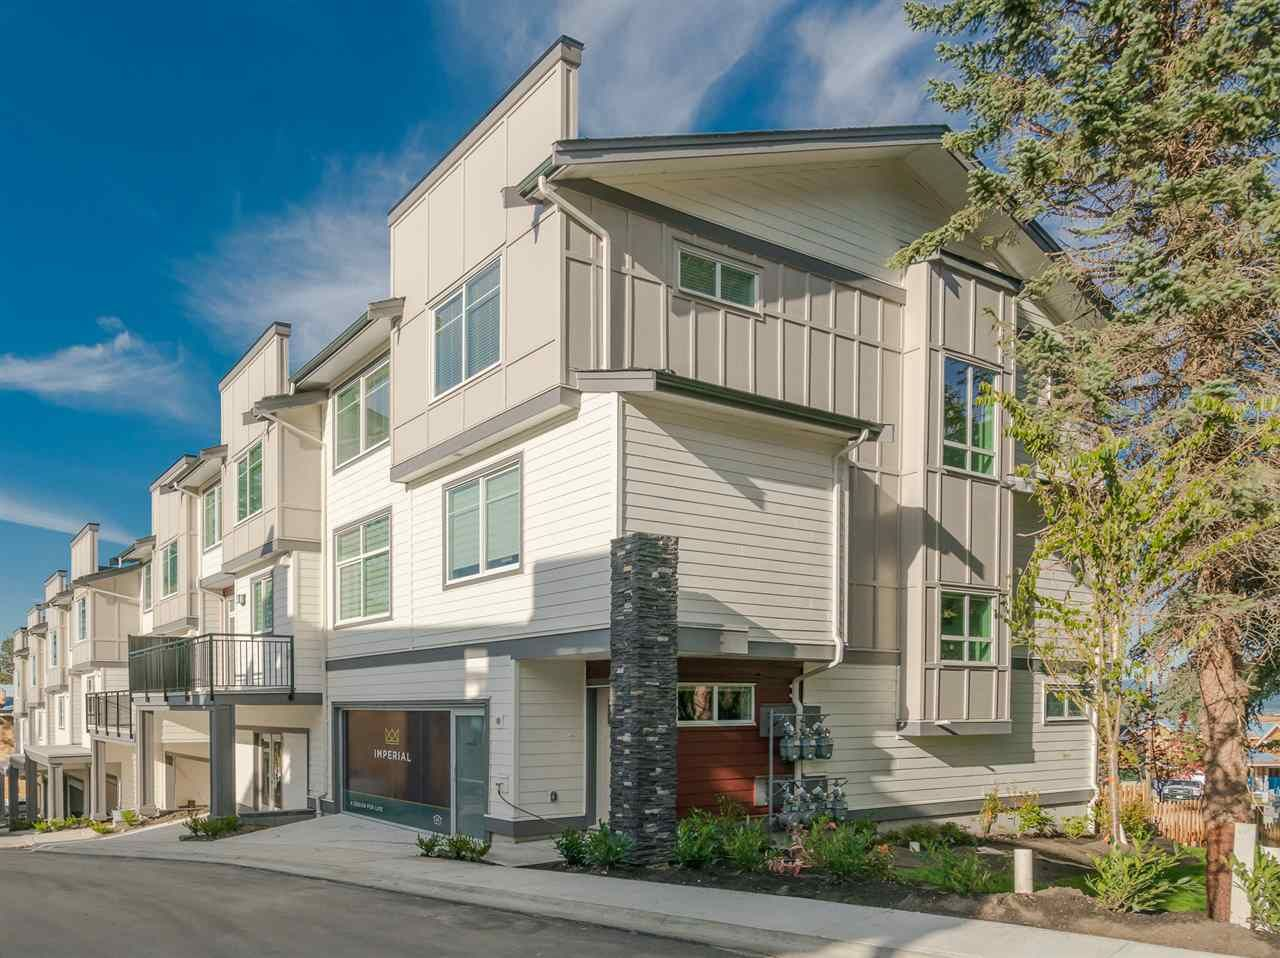 """Main Photo: 6 15633 MOUNTAIN VIEW Drive in Surrey: Grandview Surrey Townhouse for sale in """"Imperial"""" (South Surrey White Rock)  : MLS®# R2221276"""